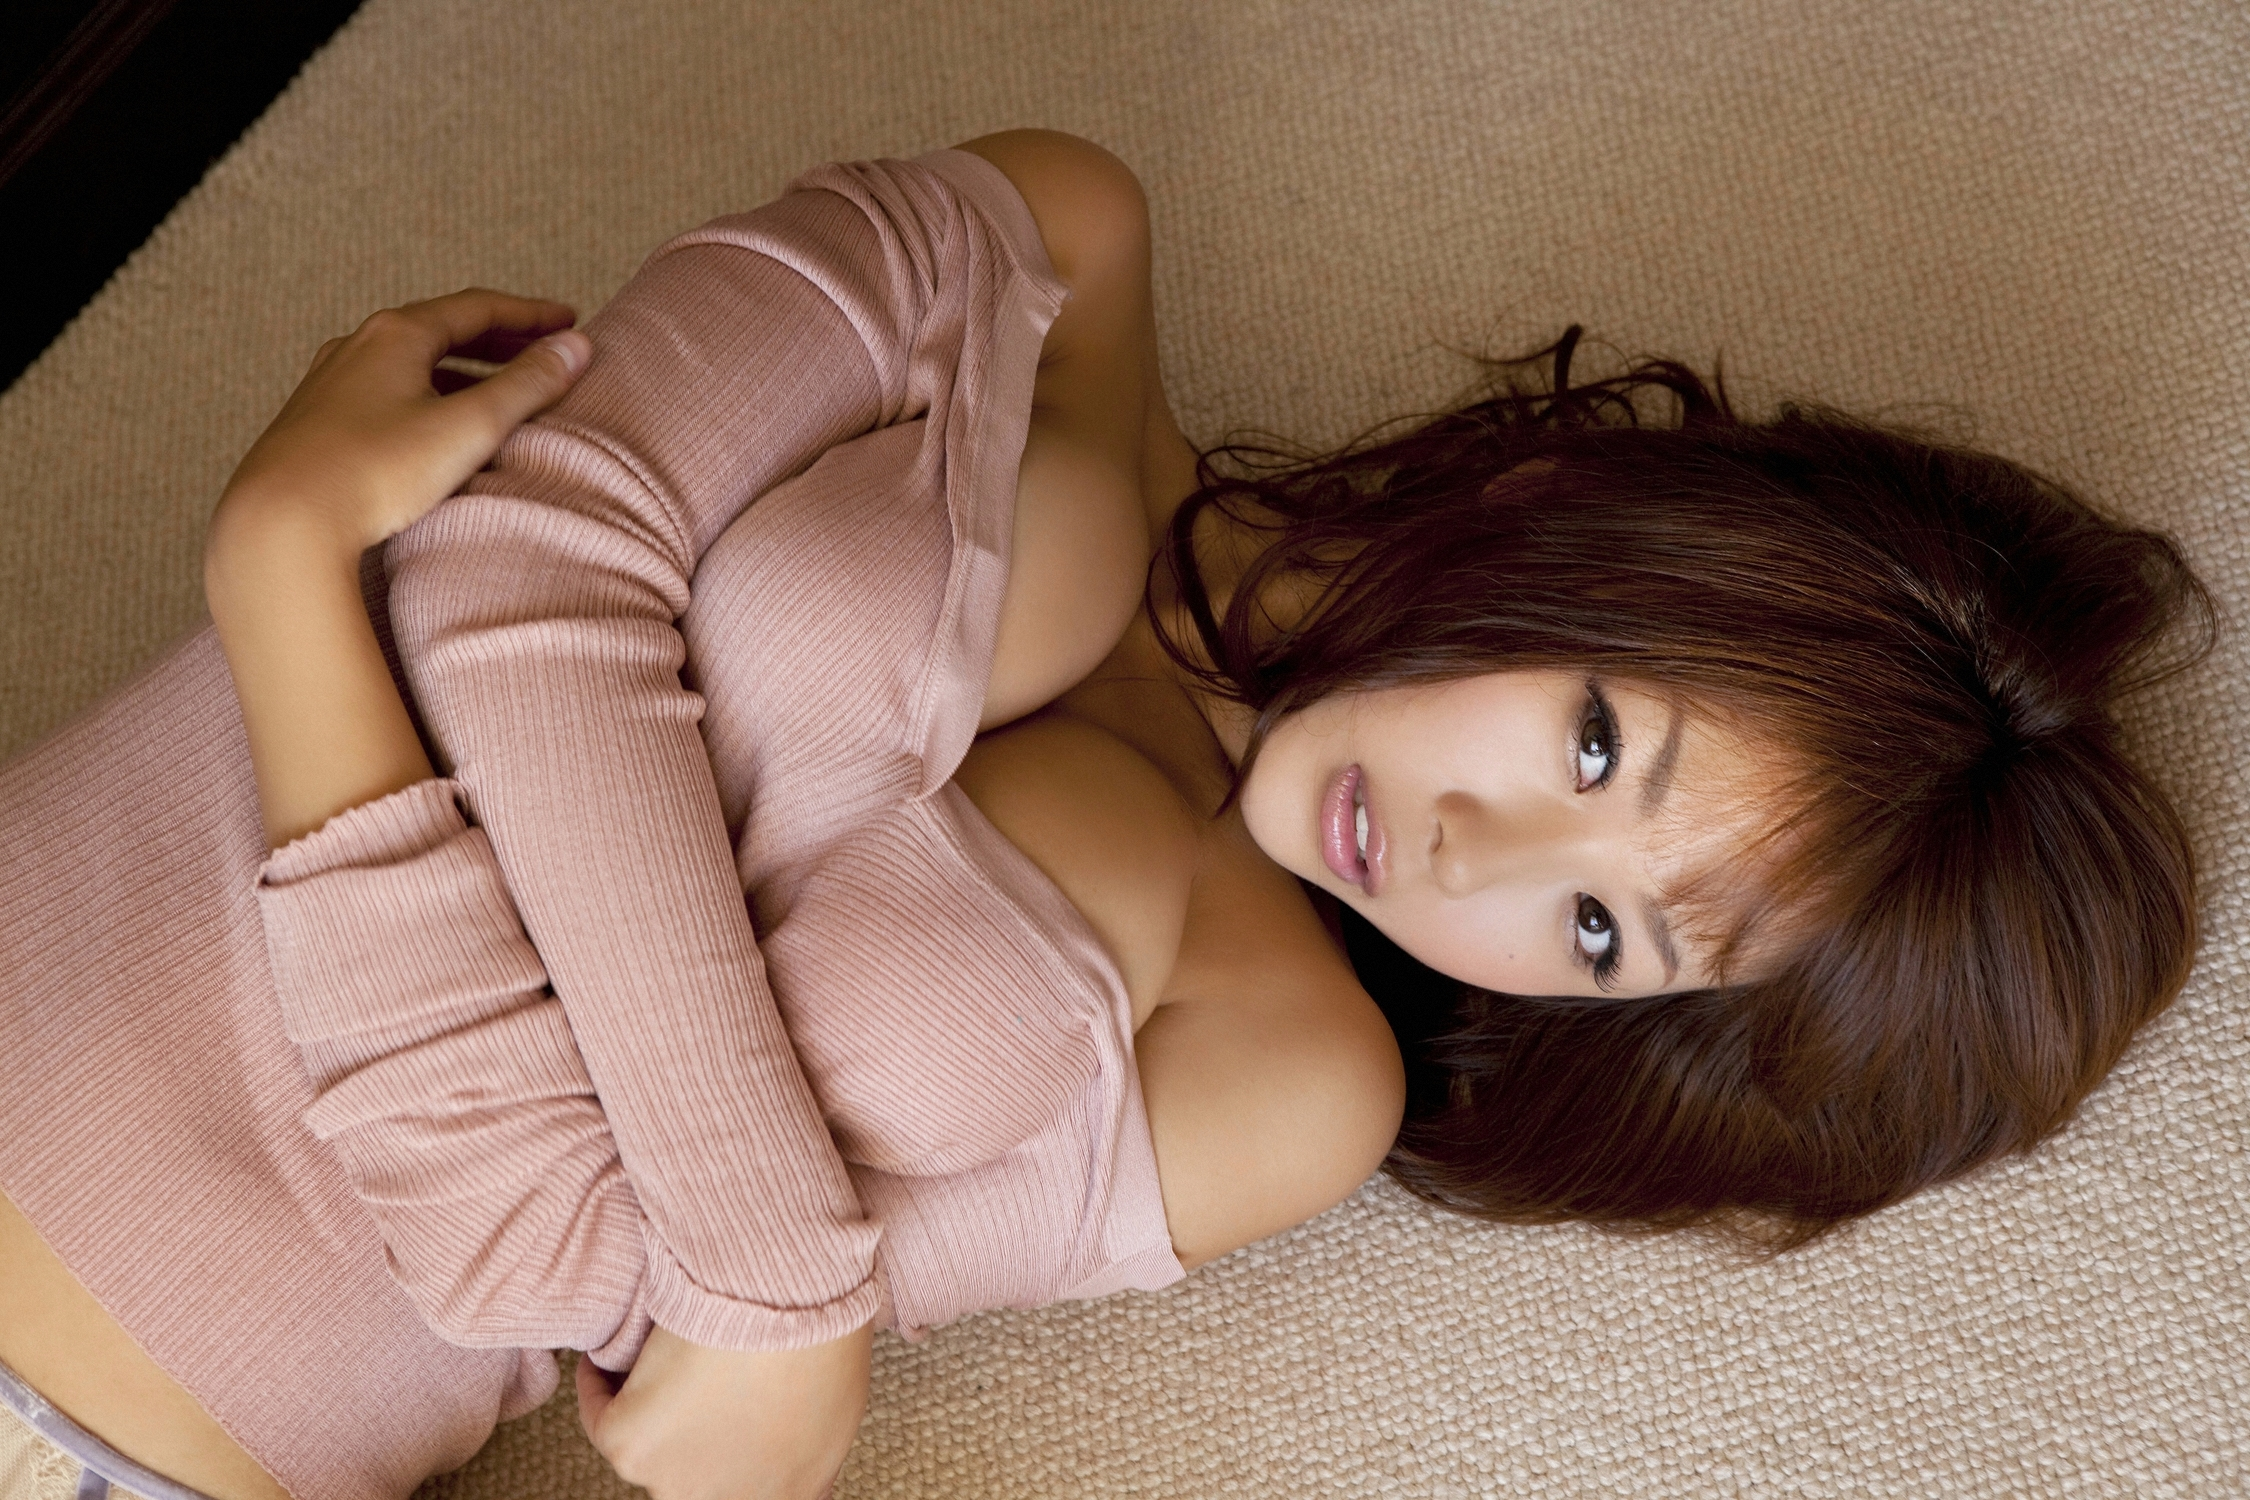 woman cleavage asians Mai HD Wallpaper